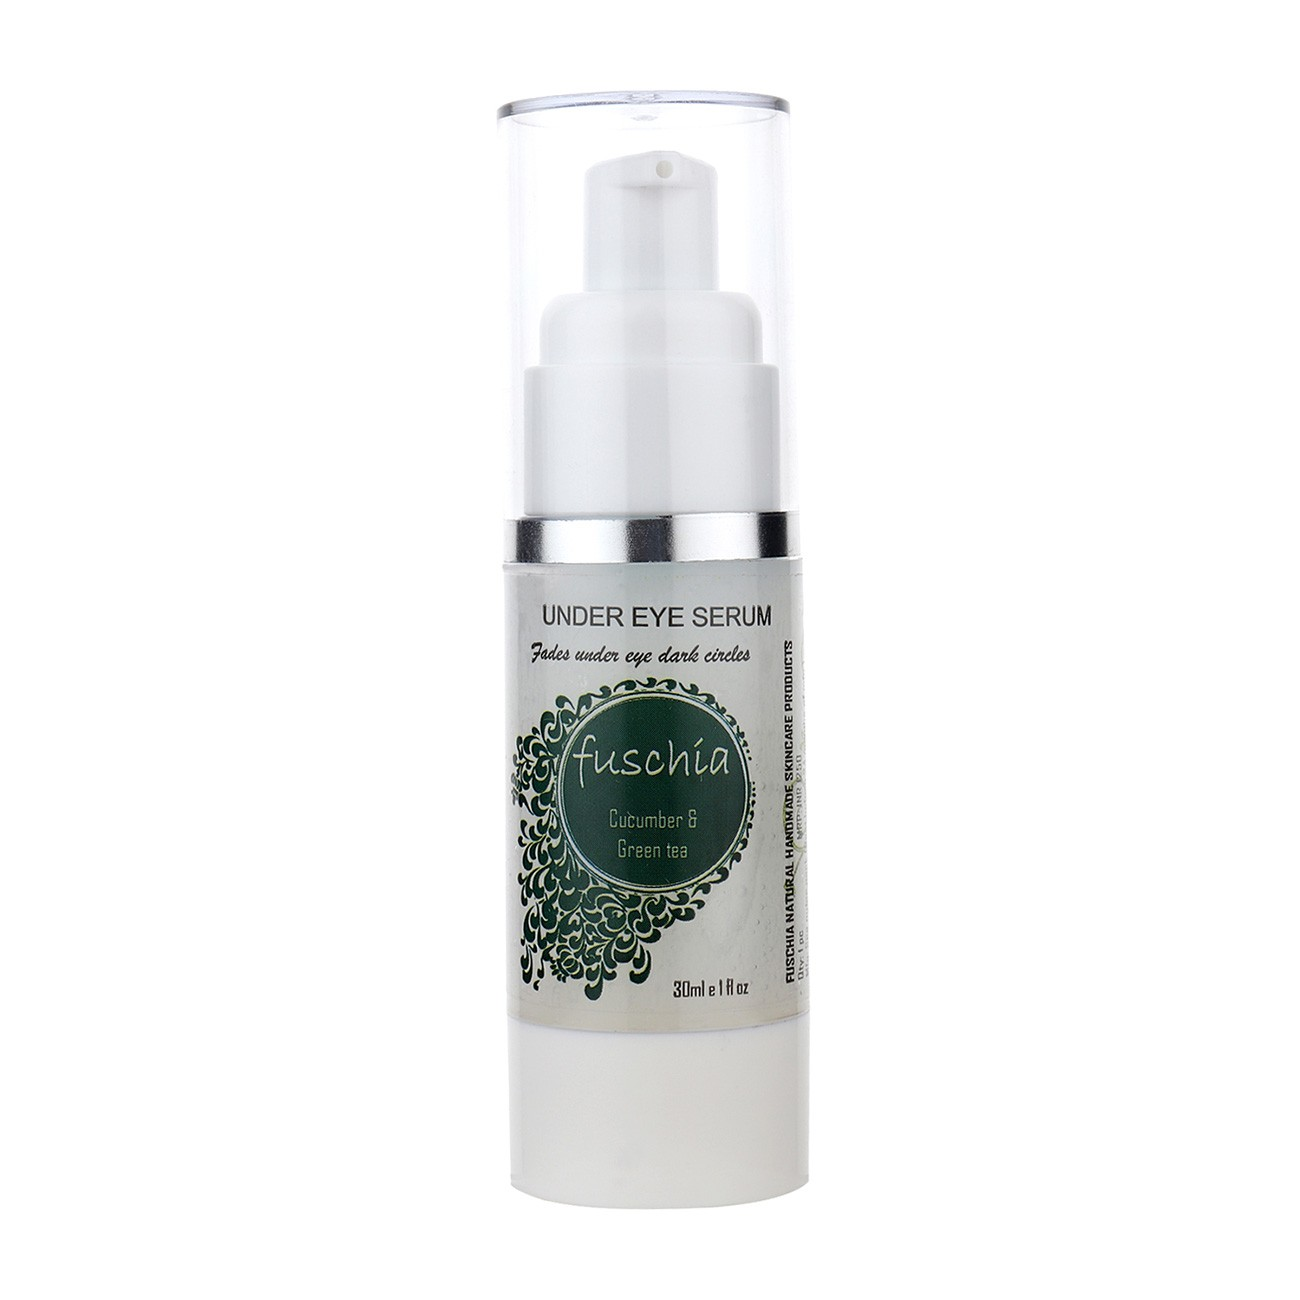 Under Eye Serum Cucumber & Green Tea Extracts